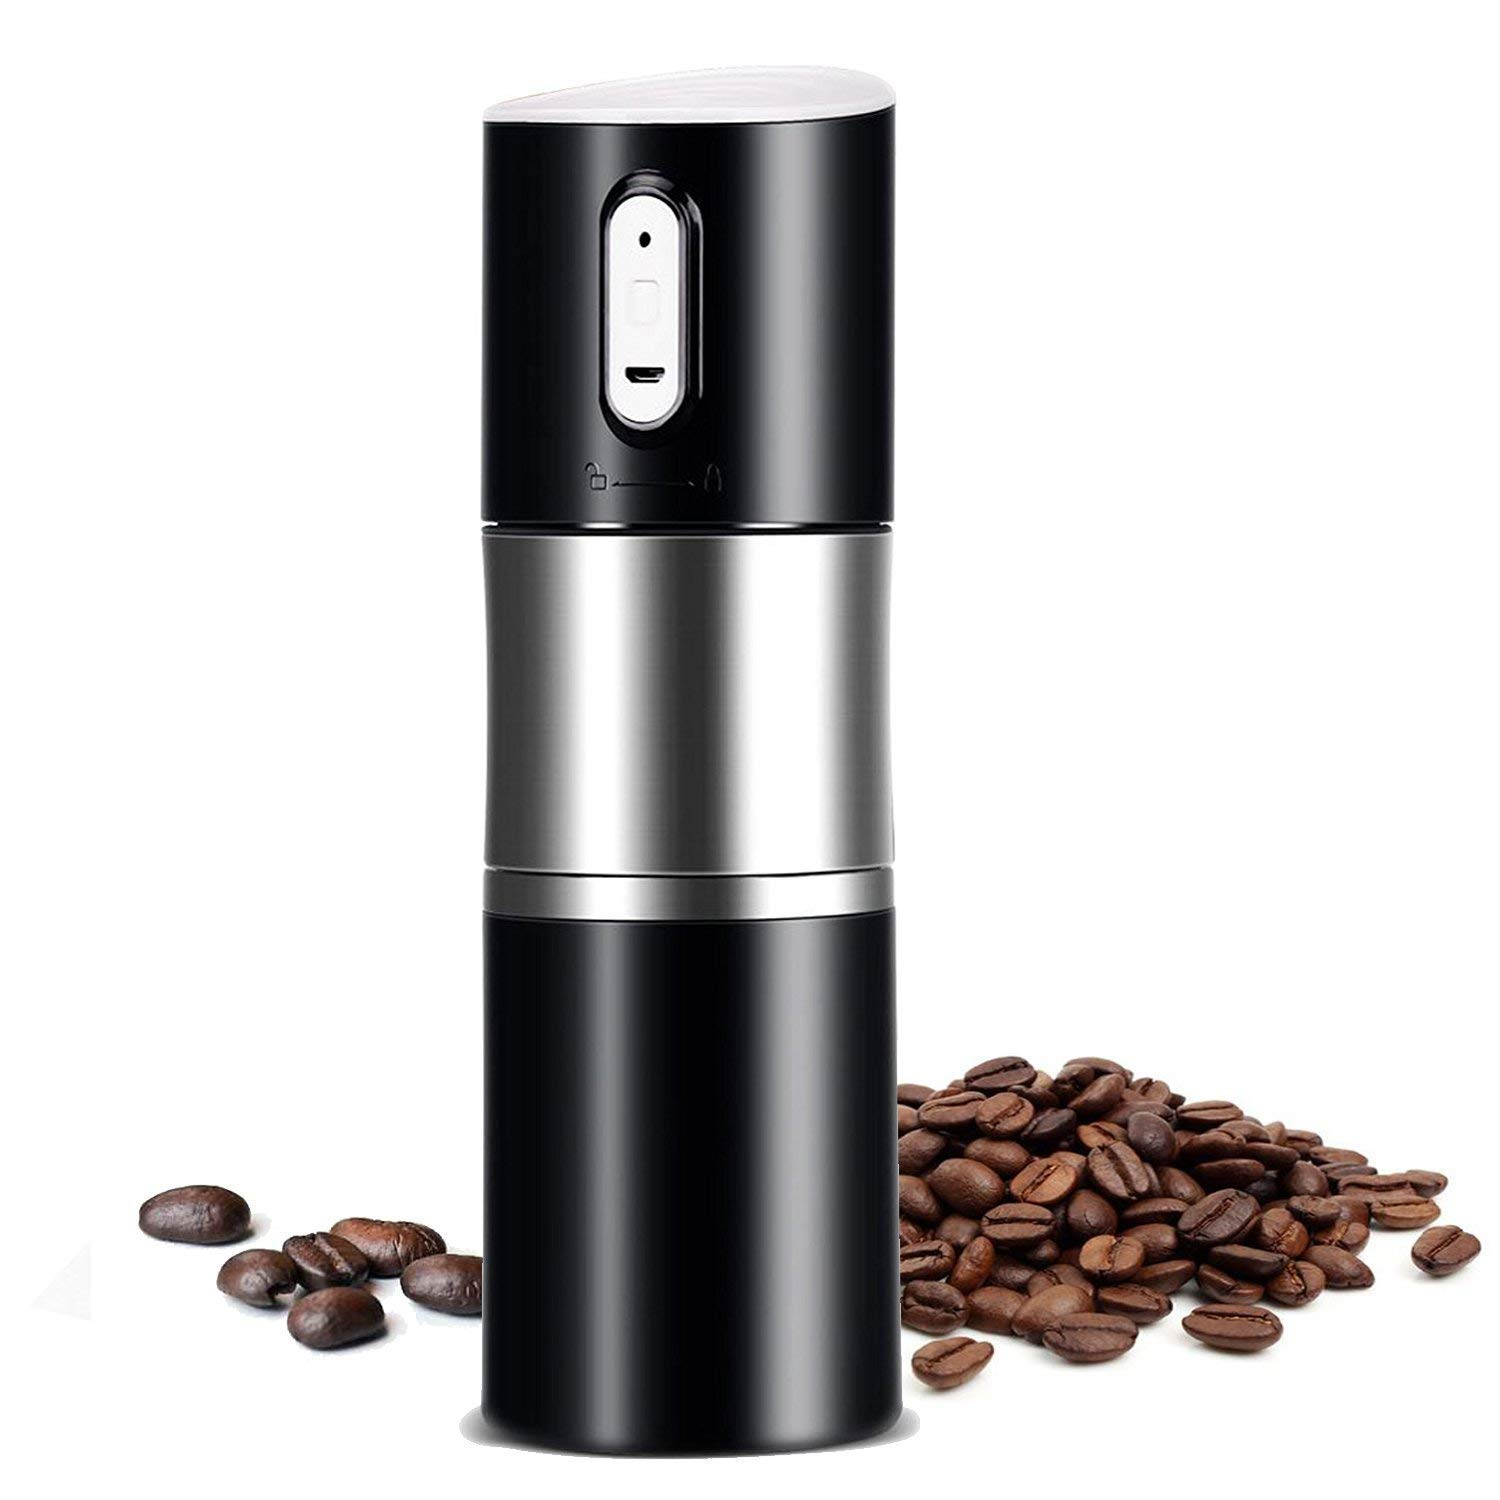 TOOGOO Portable Coffee Grinder Burr Automatic Espresso Machine Coffee Maker Rechargeable Battery Operated,Travel Coffee Tumbler For Home,Office,Cars,Camping,Travel Black